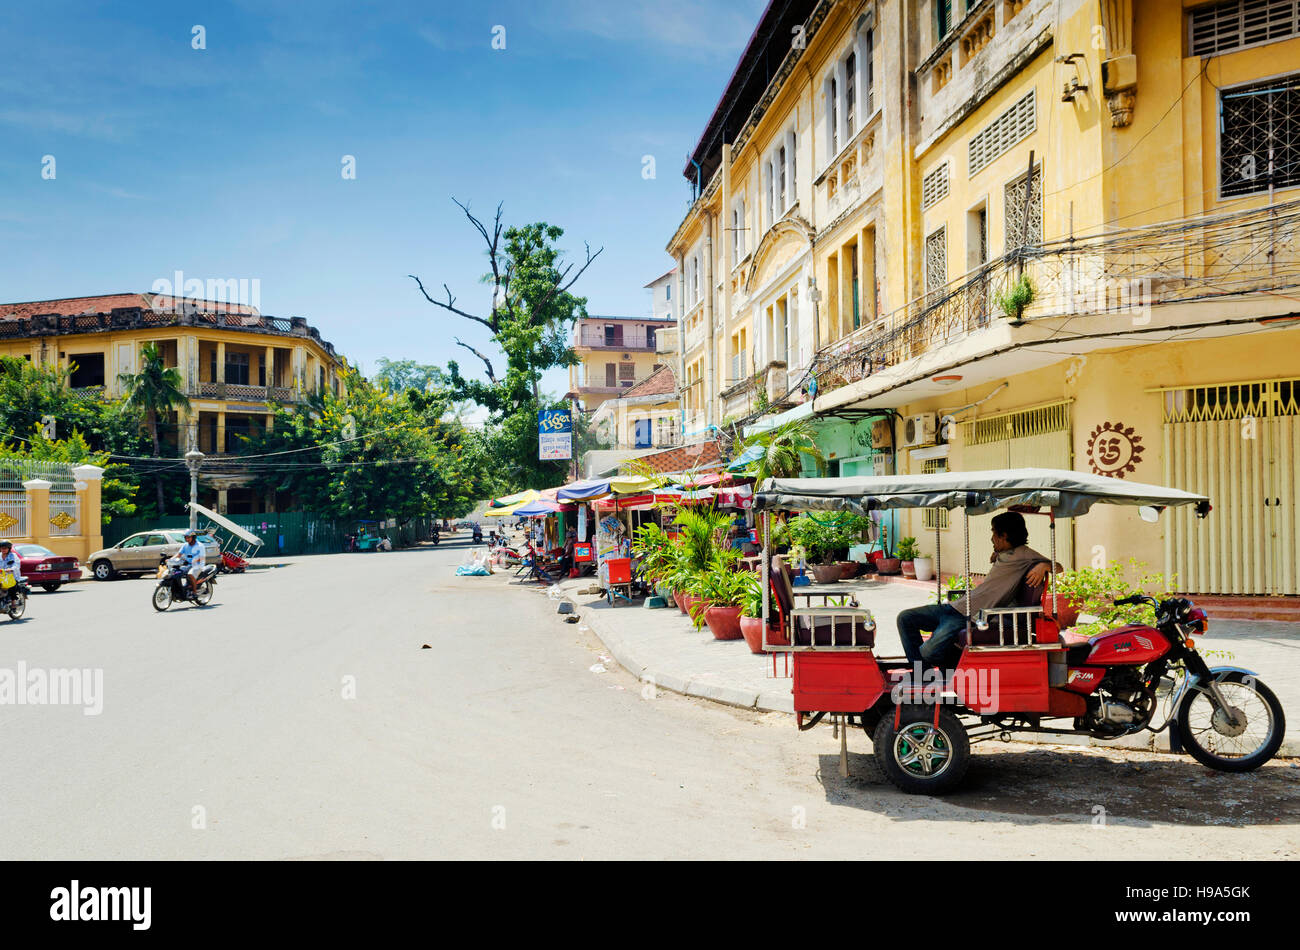 french colonial old town street buildings in phnom penh city cambodia - Stock Image